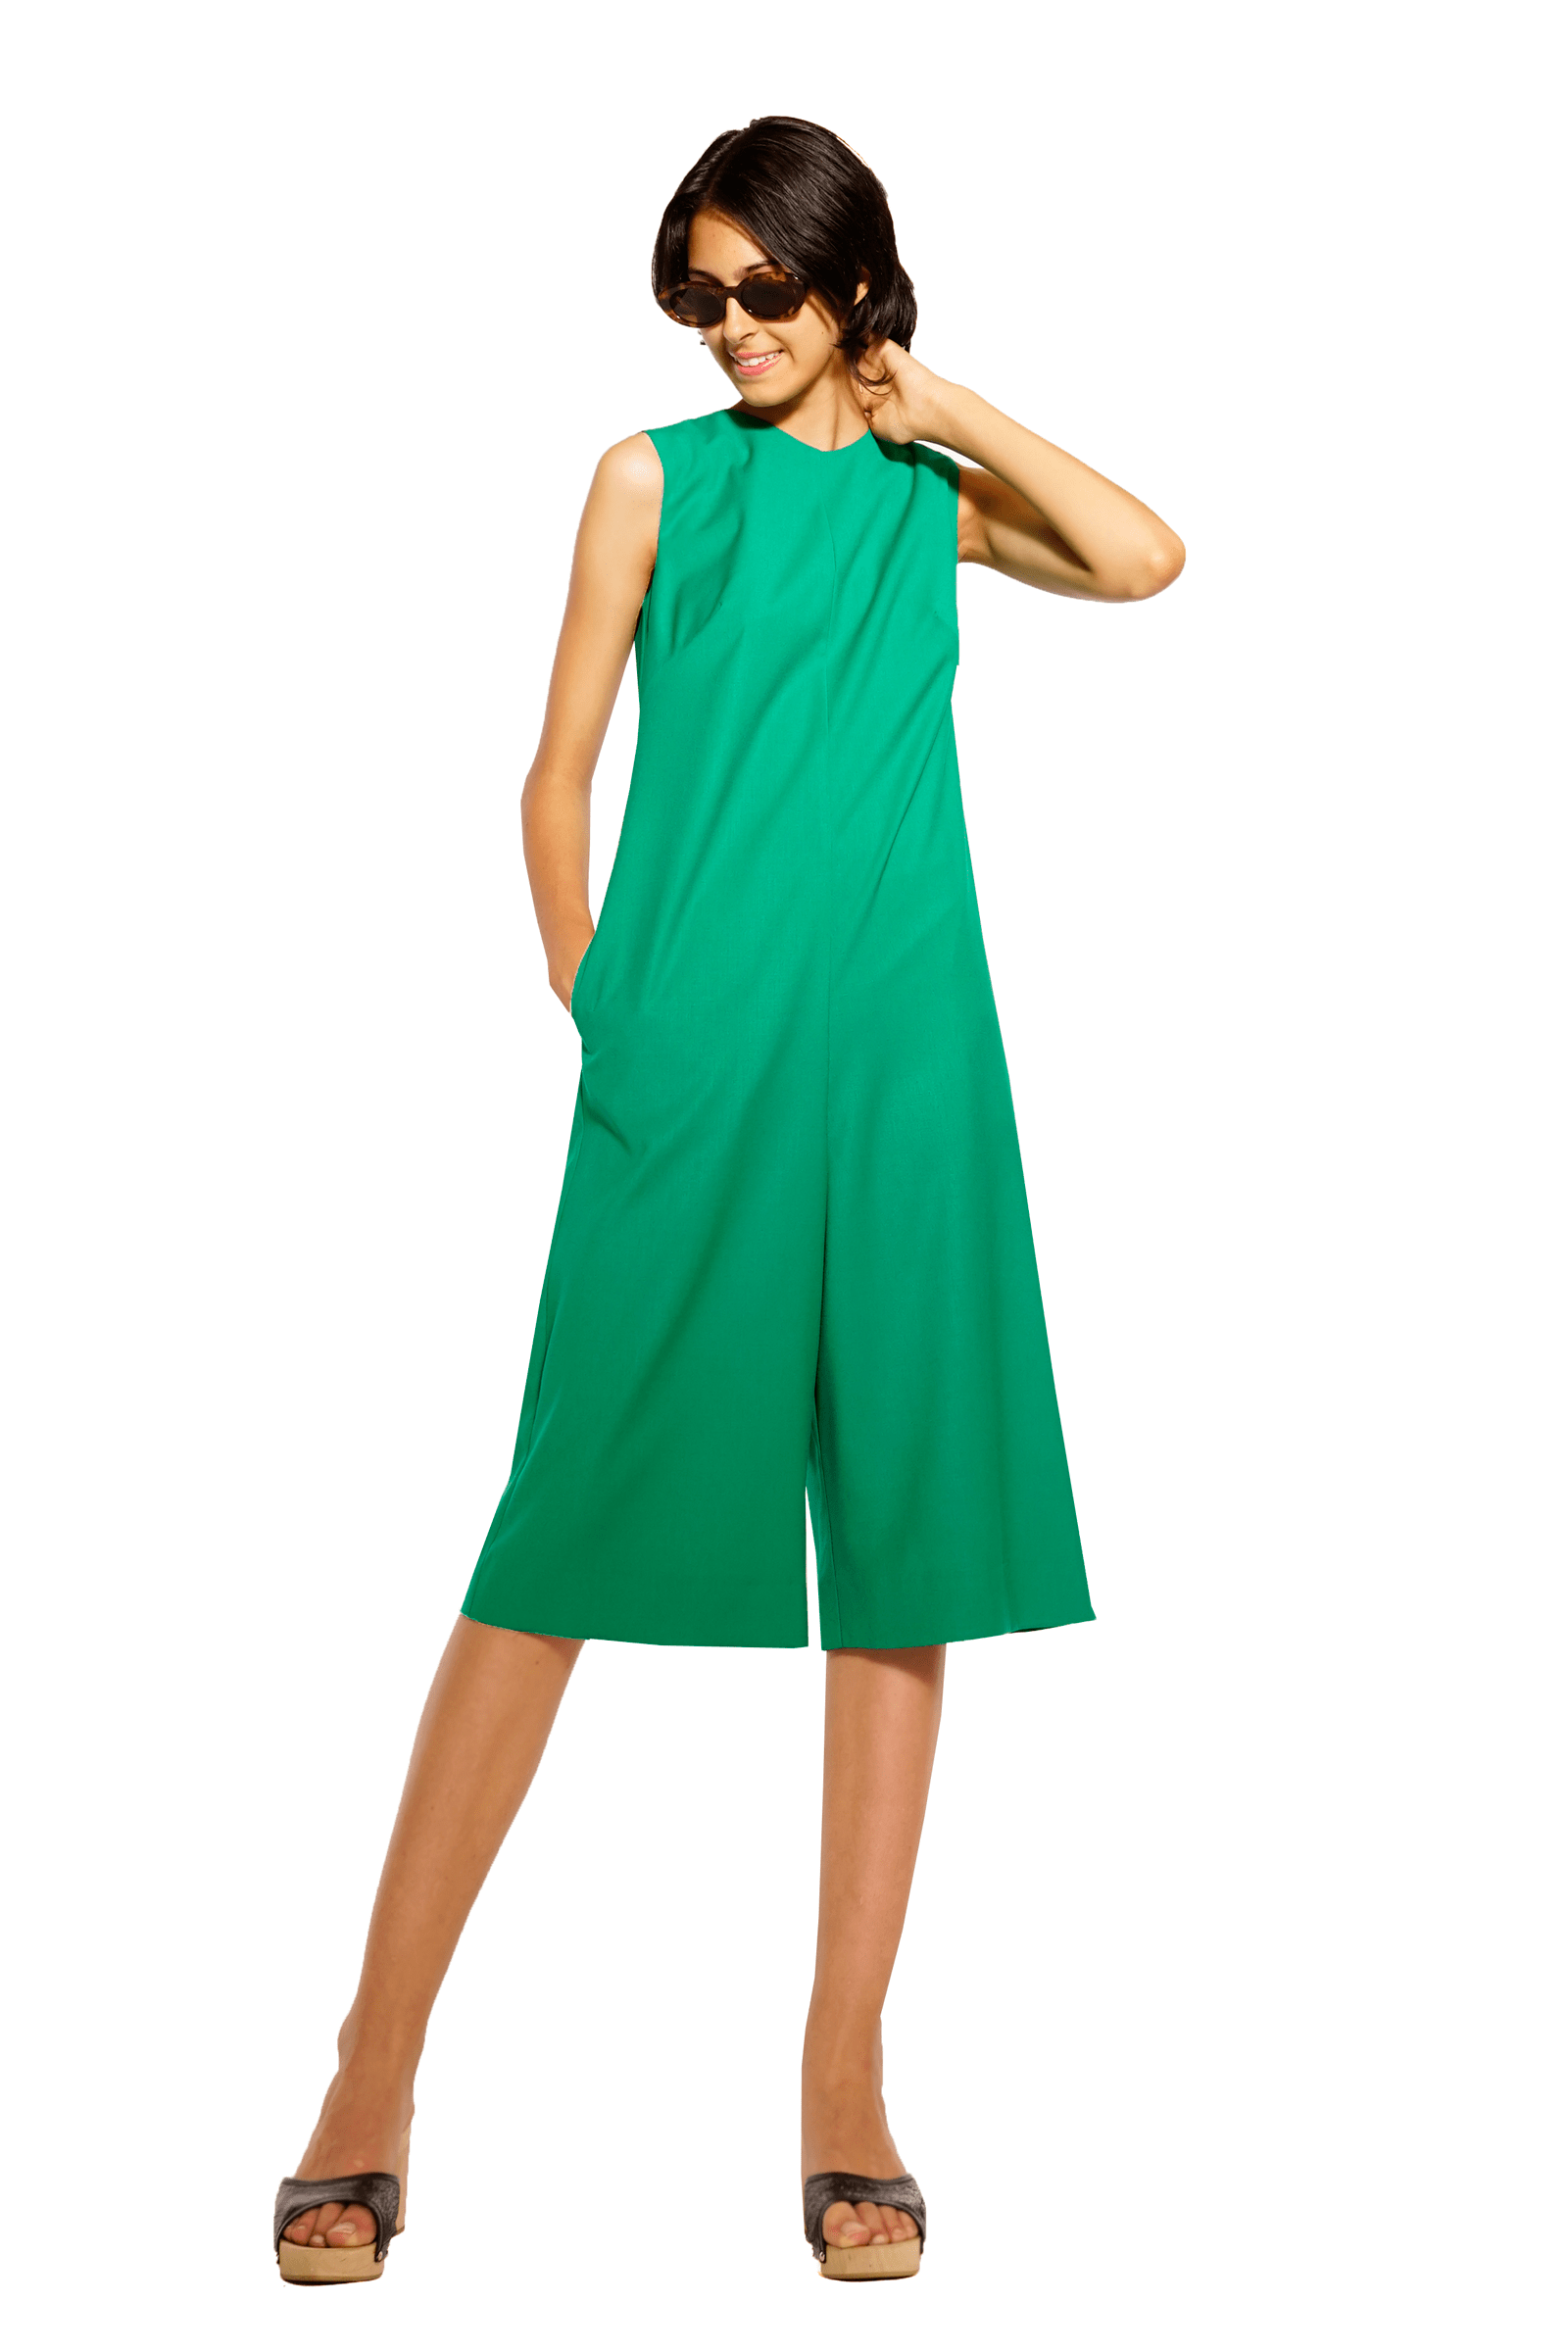 Green jumpsuit cut at the back